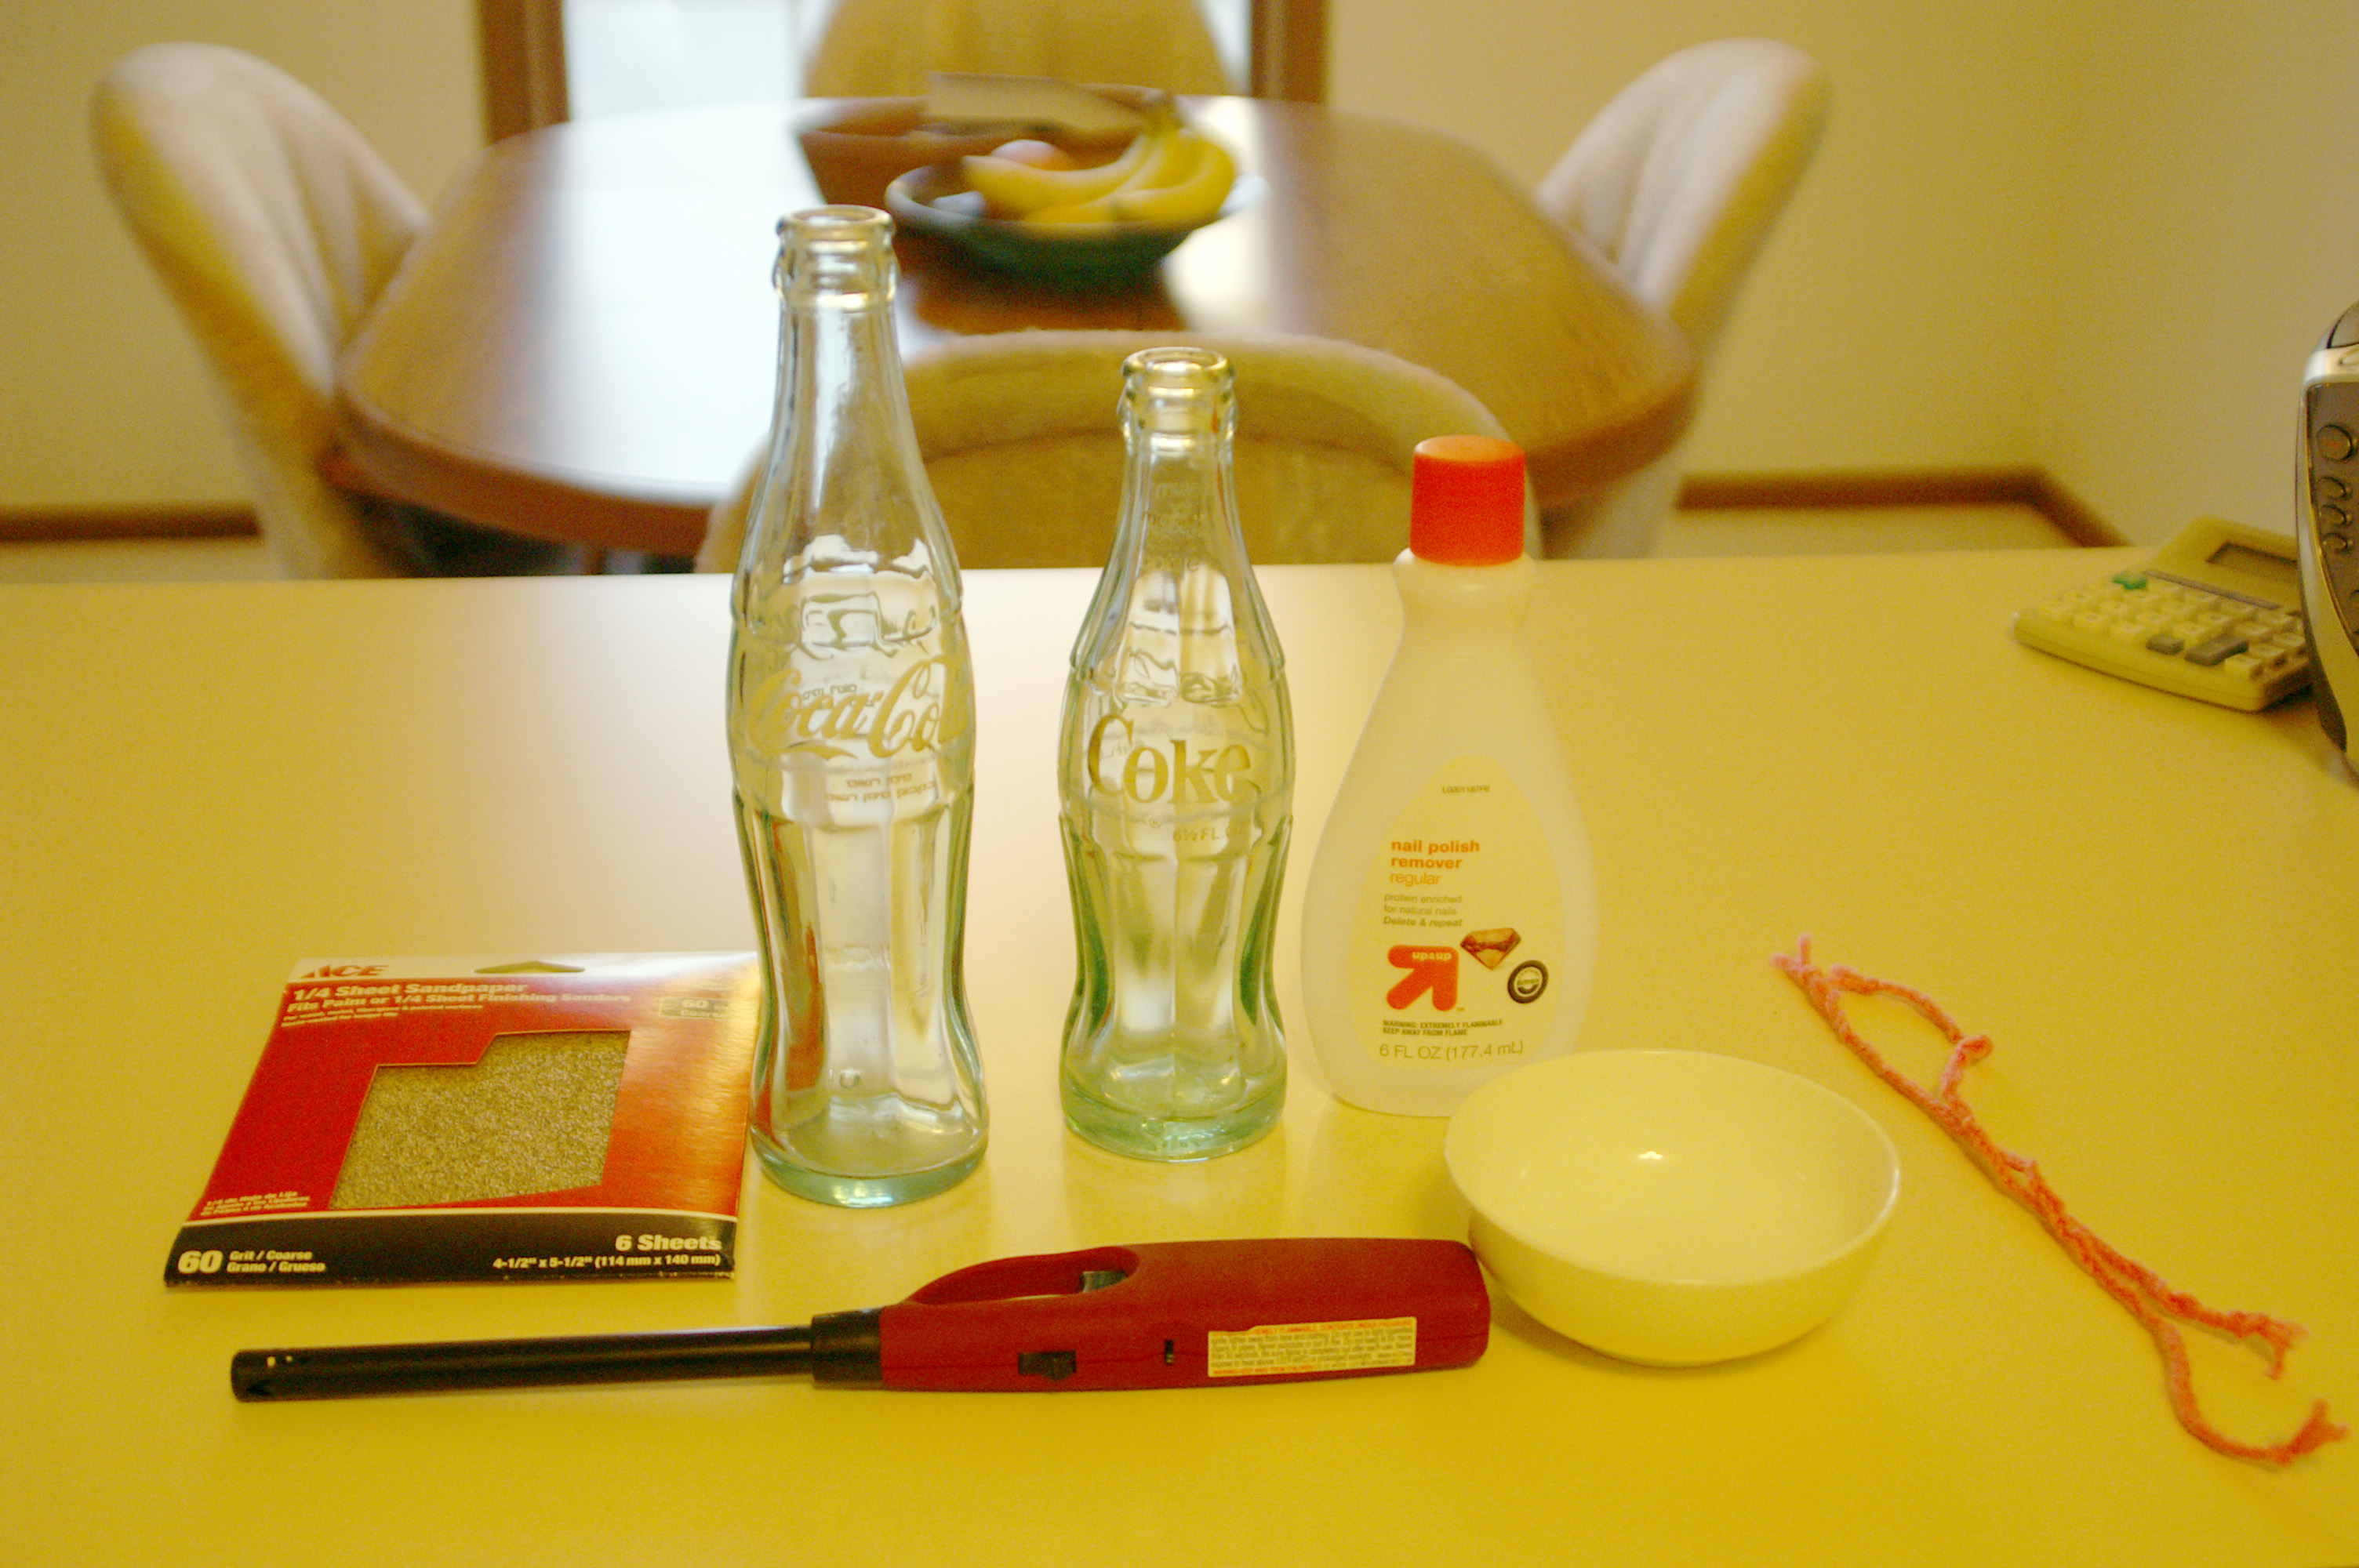 Cheers diy glass bottle cutting millieonherworld for How do i cut glass bottles